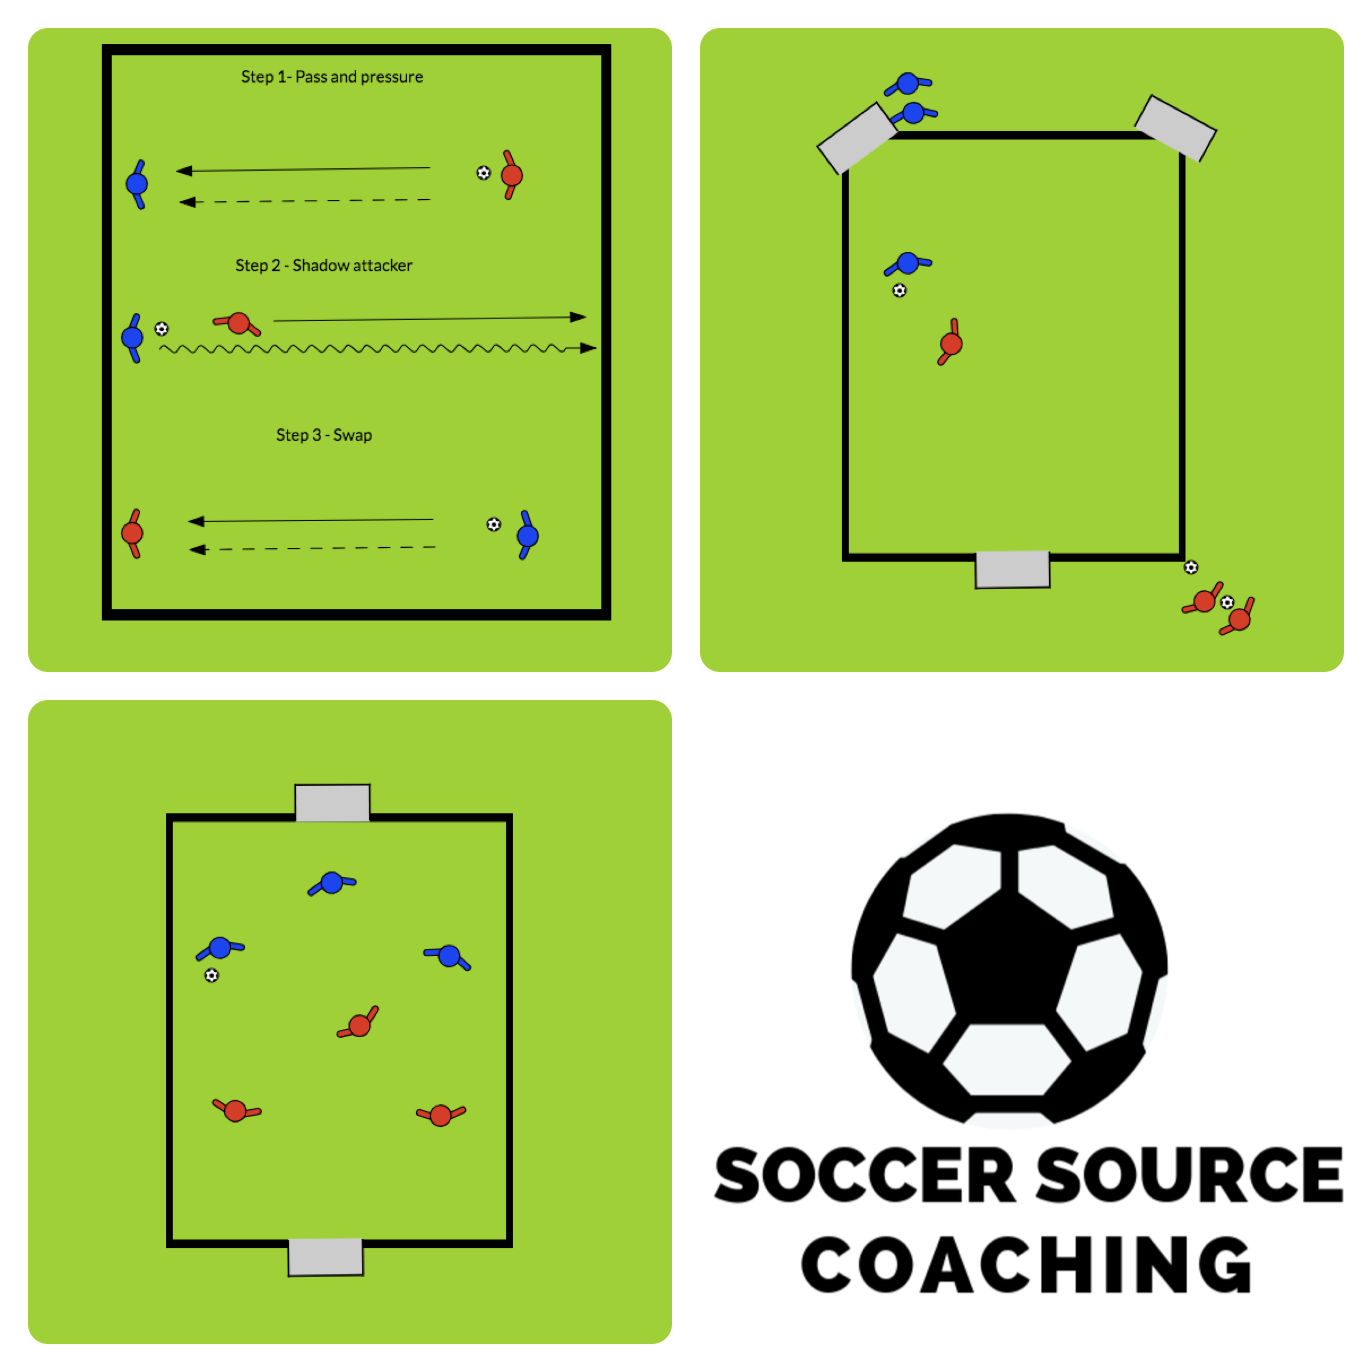 03ef6c7fb Defending 1v1 is an important skill to teach your players. Often coaches  and players only see defending as winning headers and putting strong  challenges ...